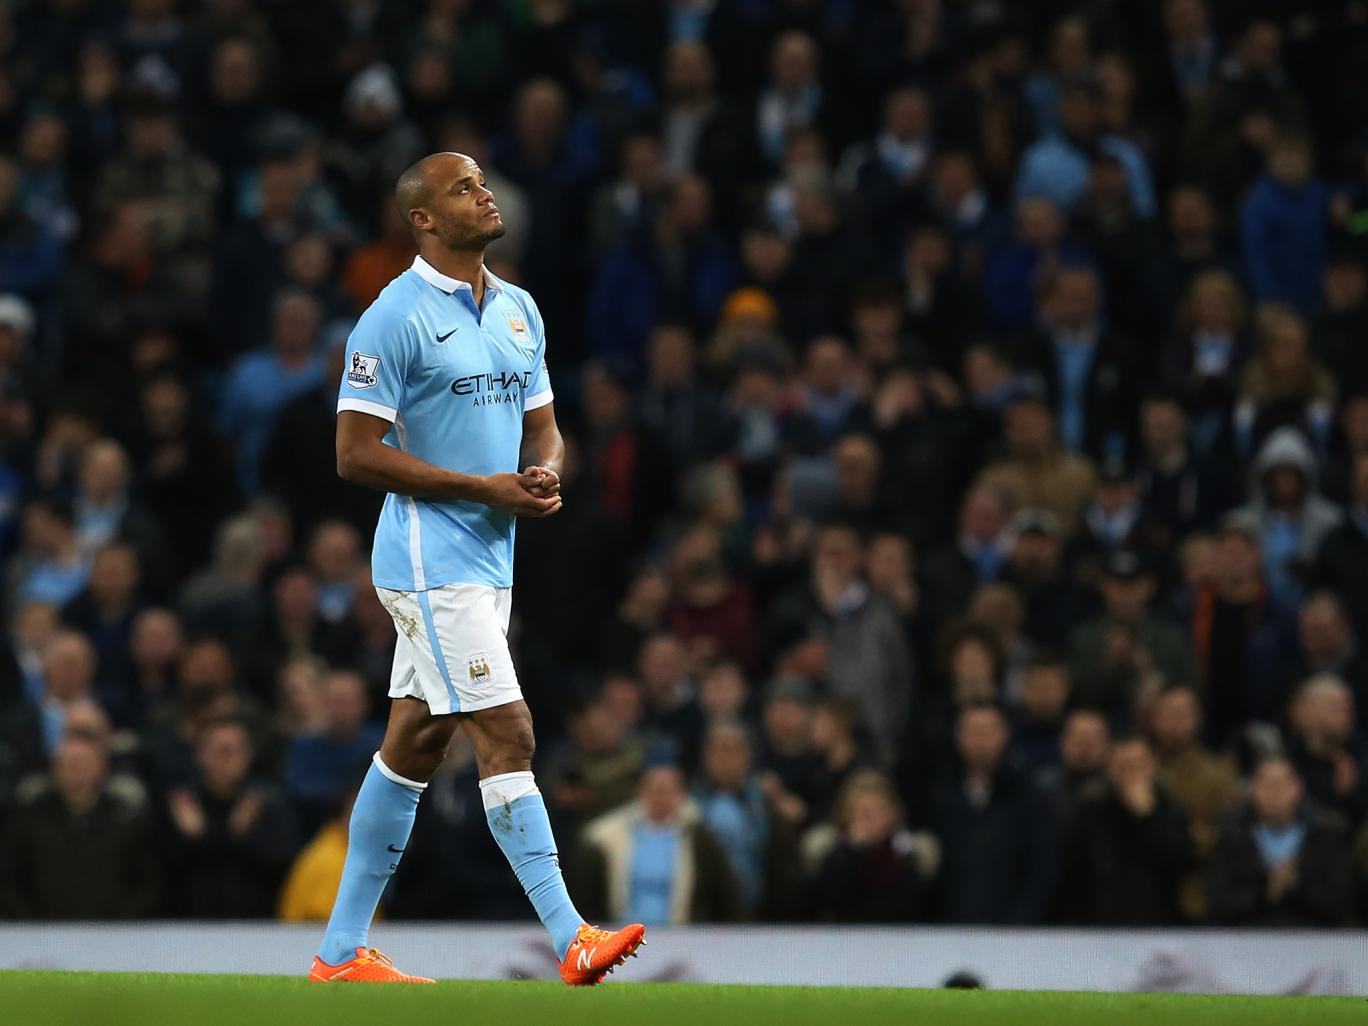 Good Kompany - City look bad at the back when Captain Vincent is sidelined by his numerous injuries.